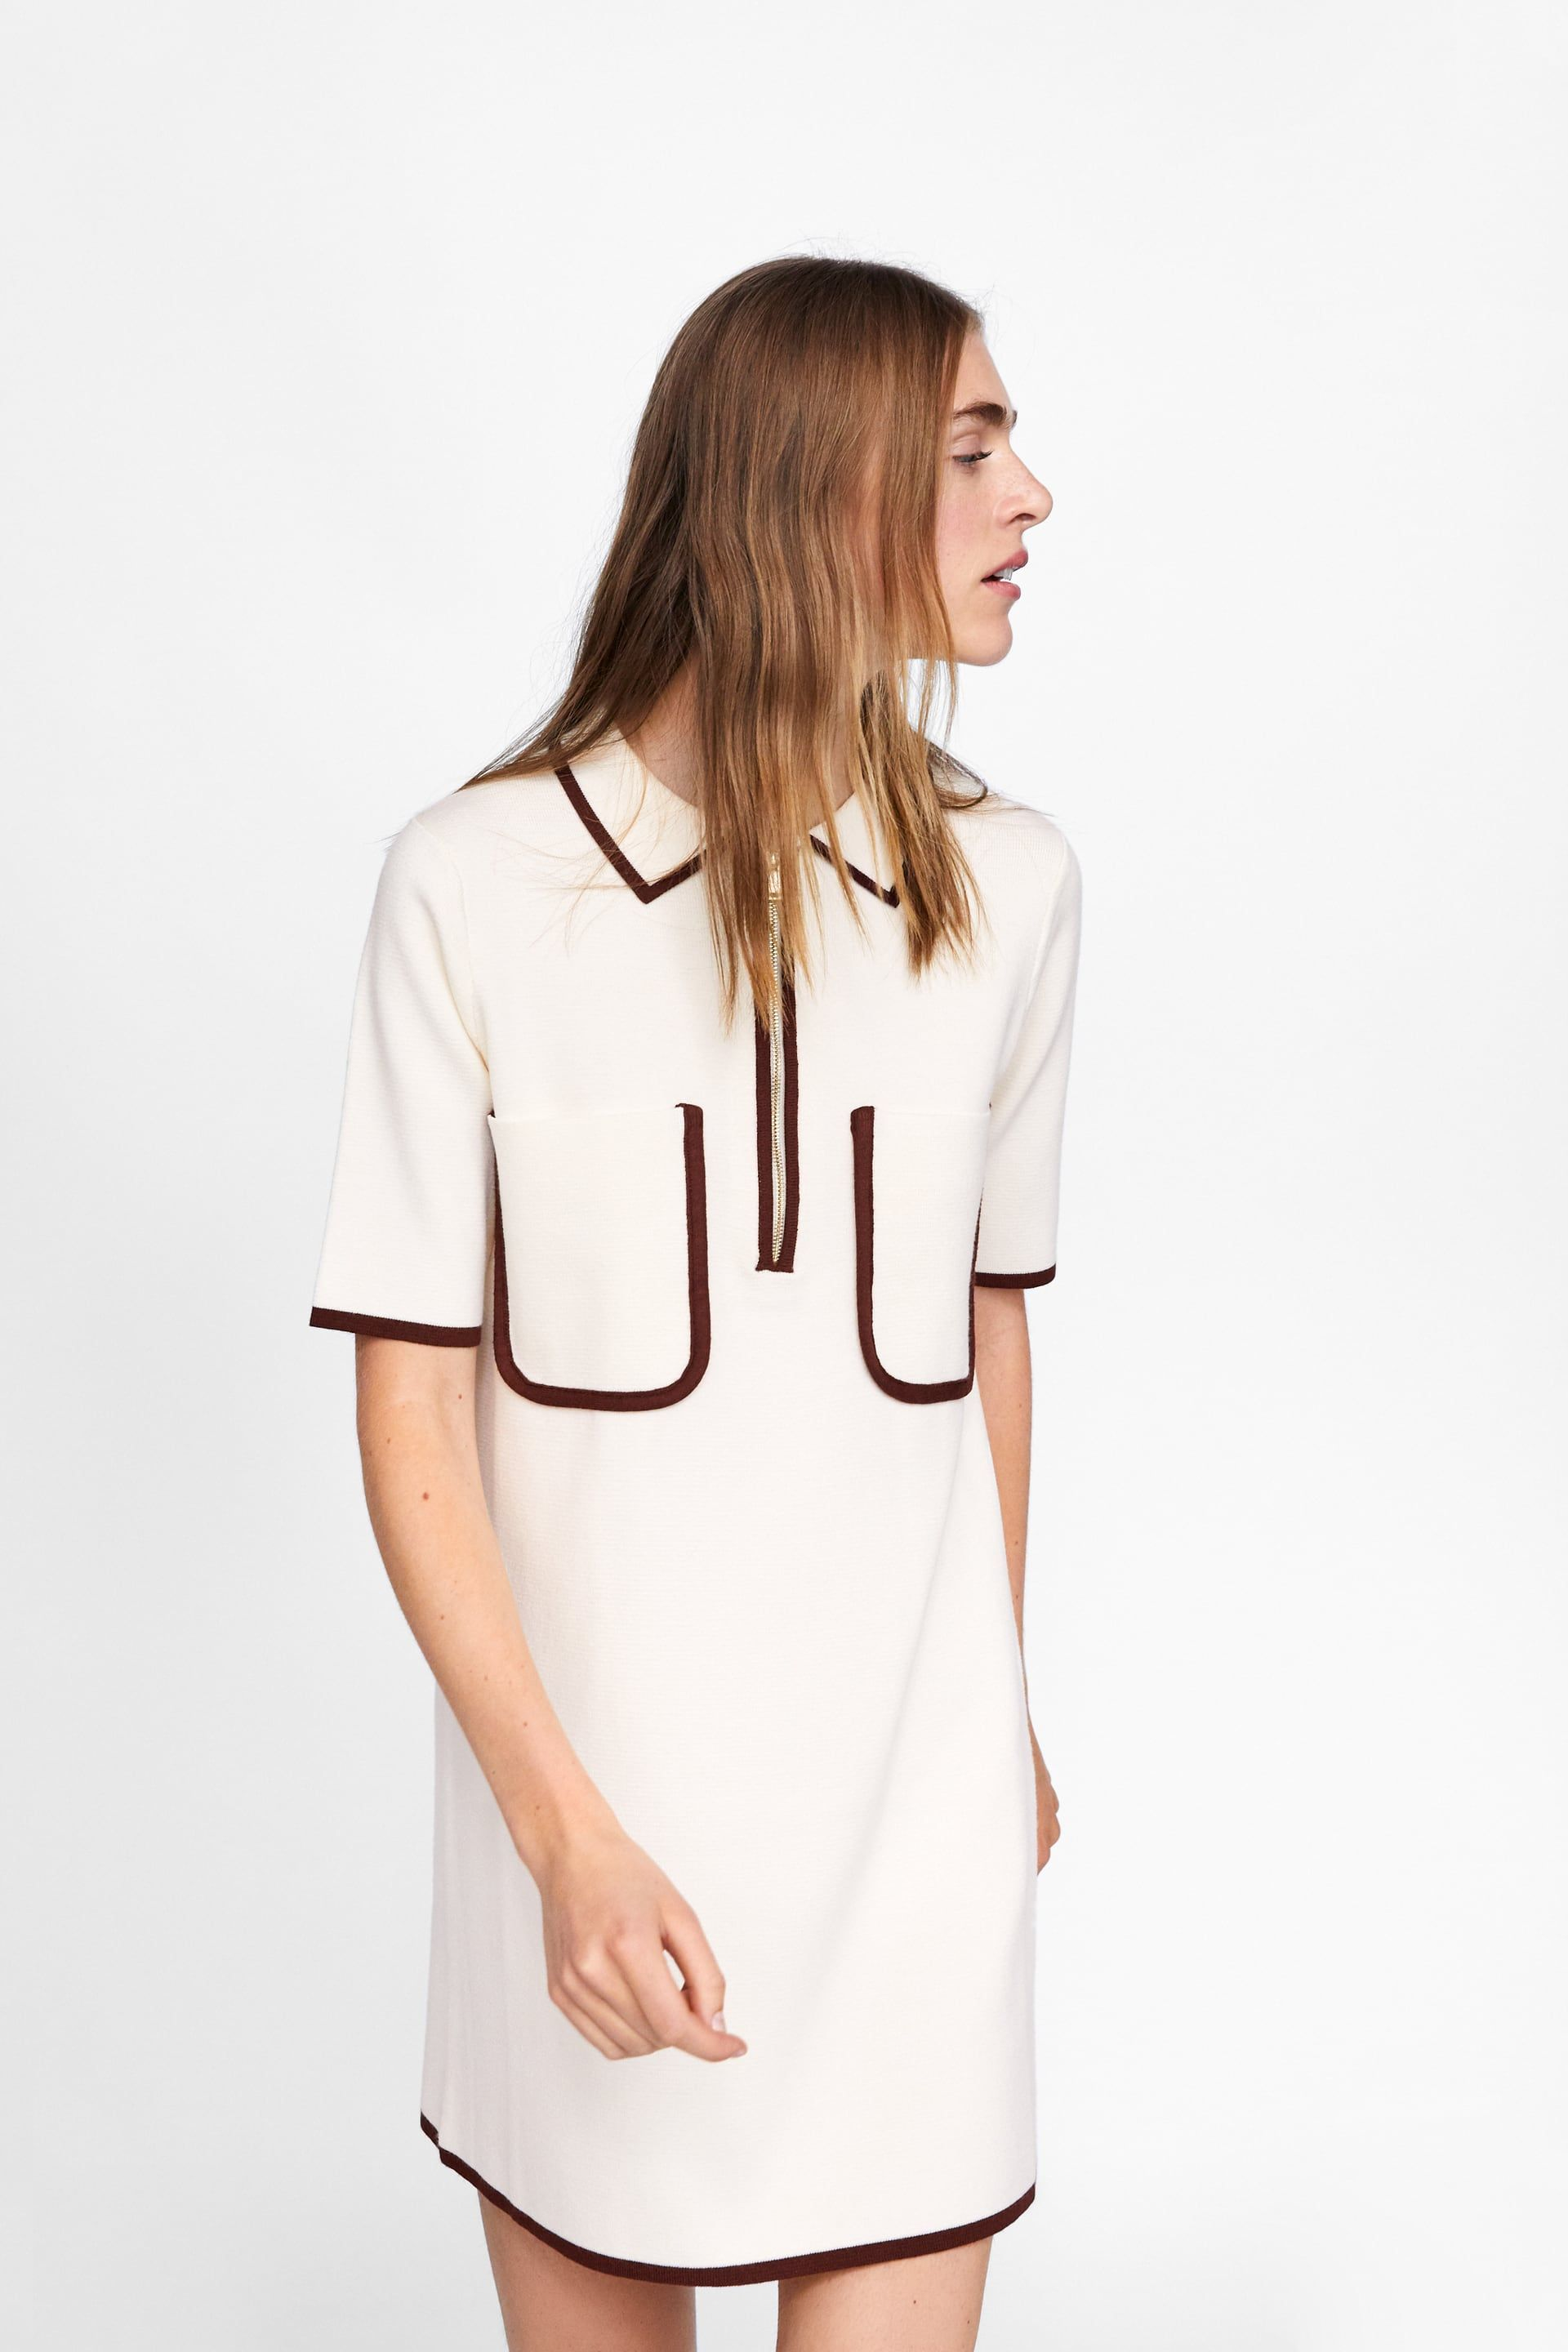 c95e6388bf Image 2 of POLO-STYLE DRESS WITH CONTRASTING TRIMS from Zara   XMAS ...